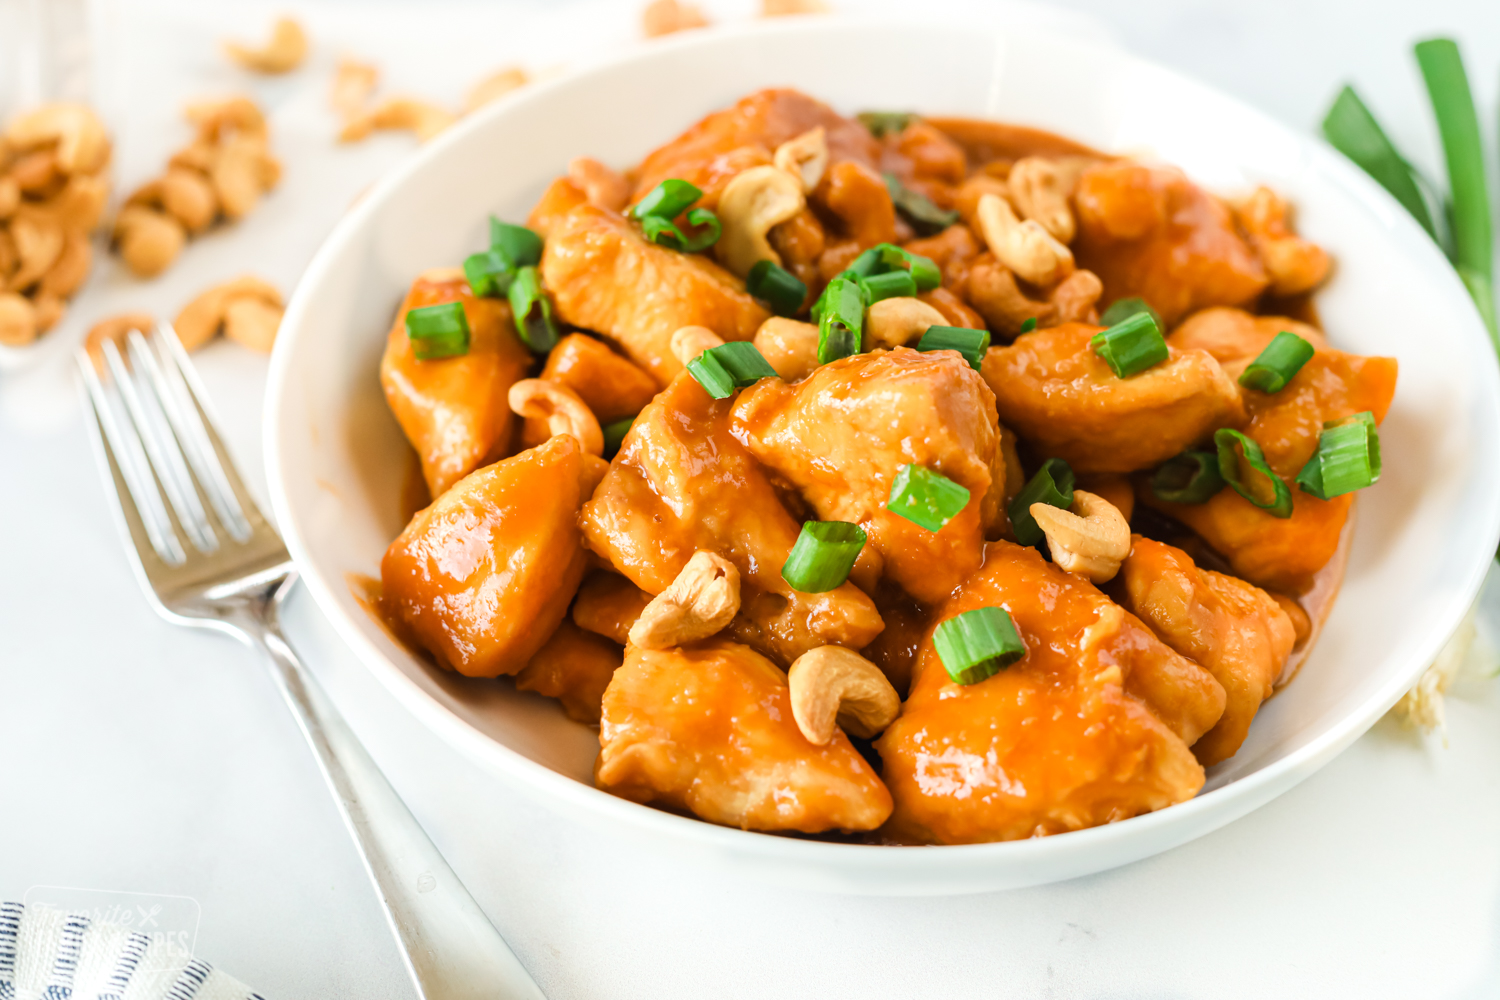 A bowl of cashew chicken with cashews, sauce, and green onion